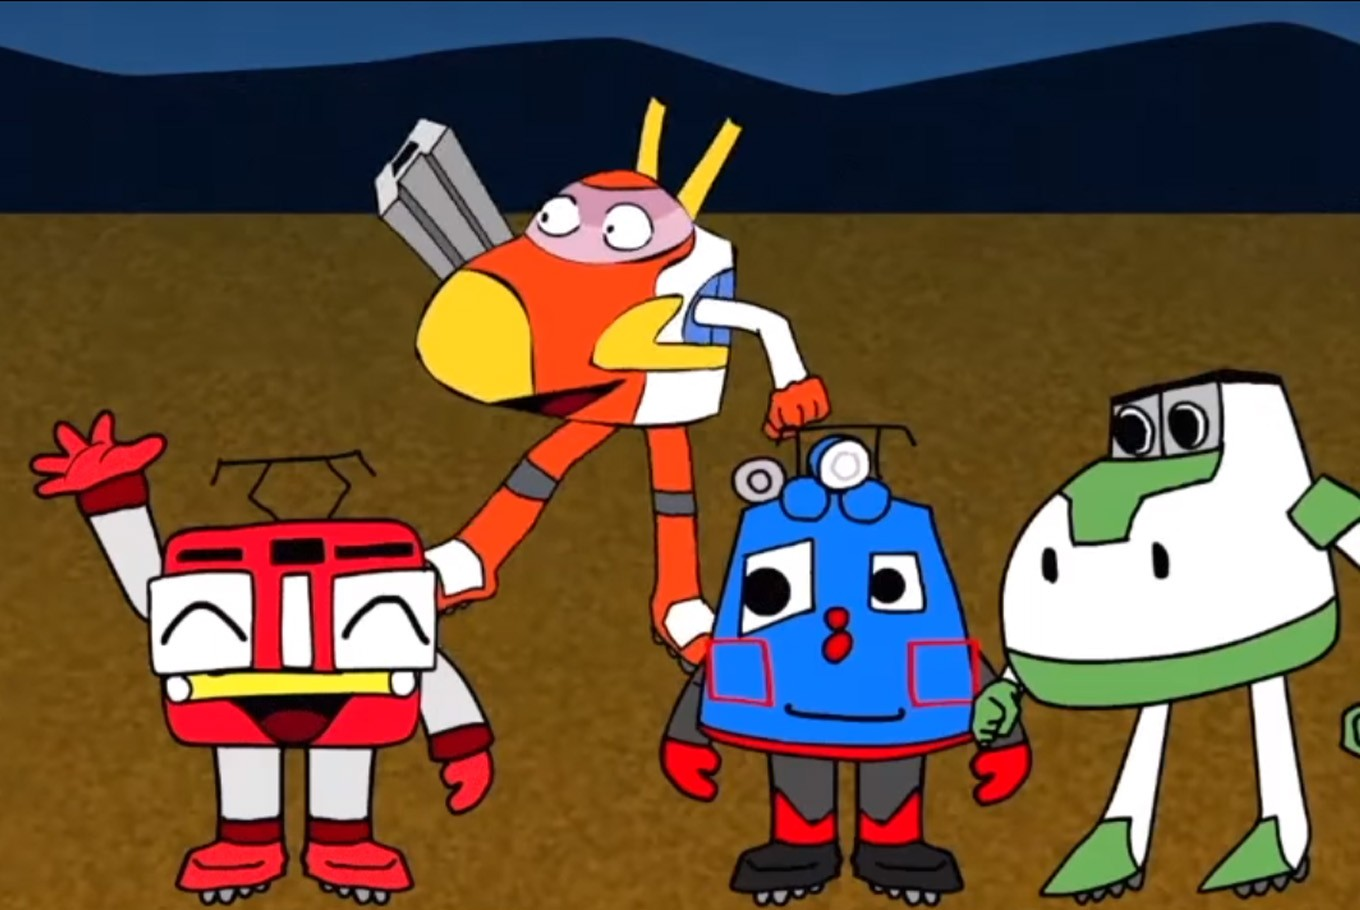 Animated series seeks to educate children on commuter trains